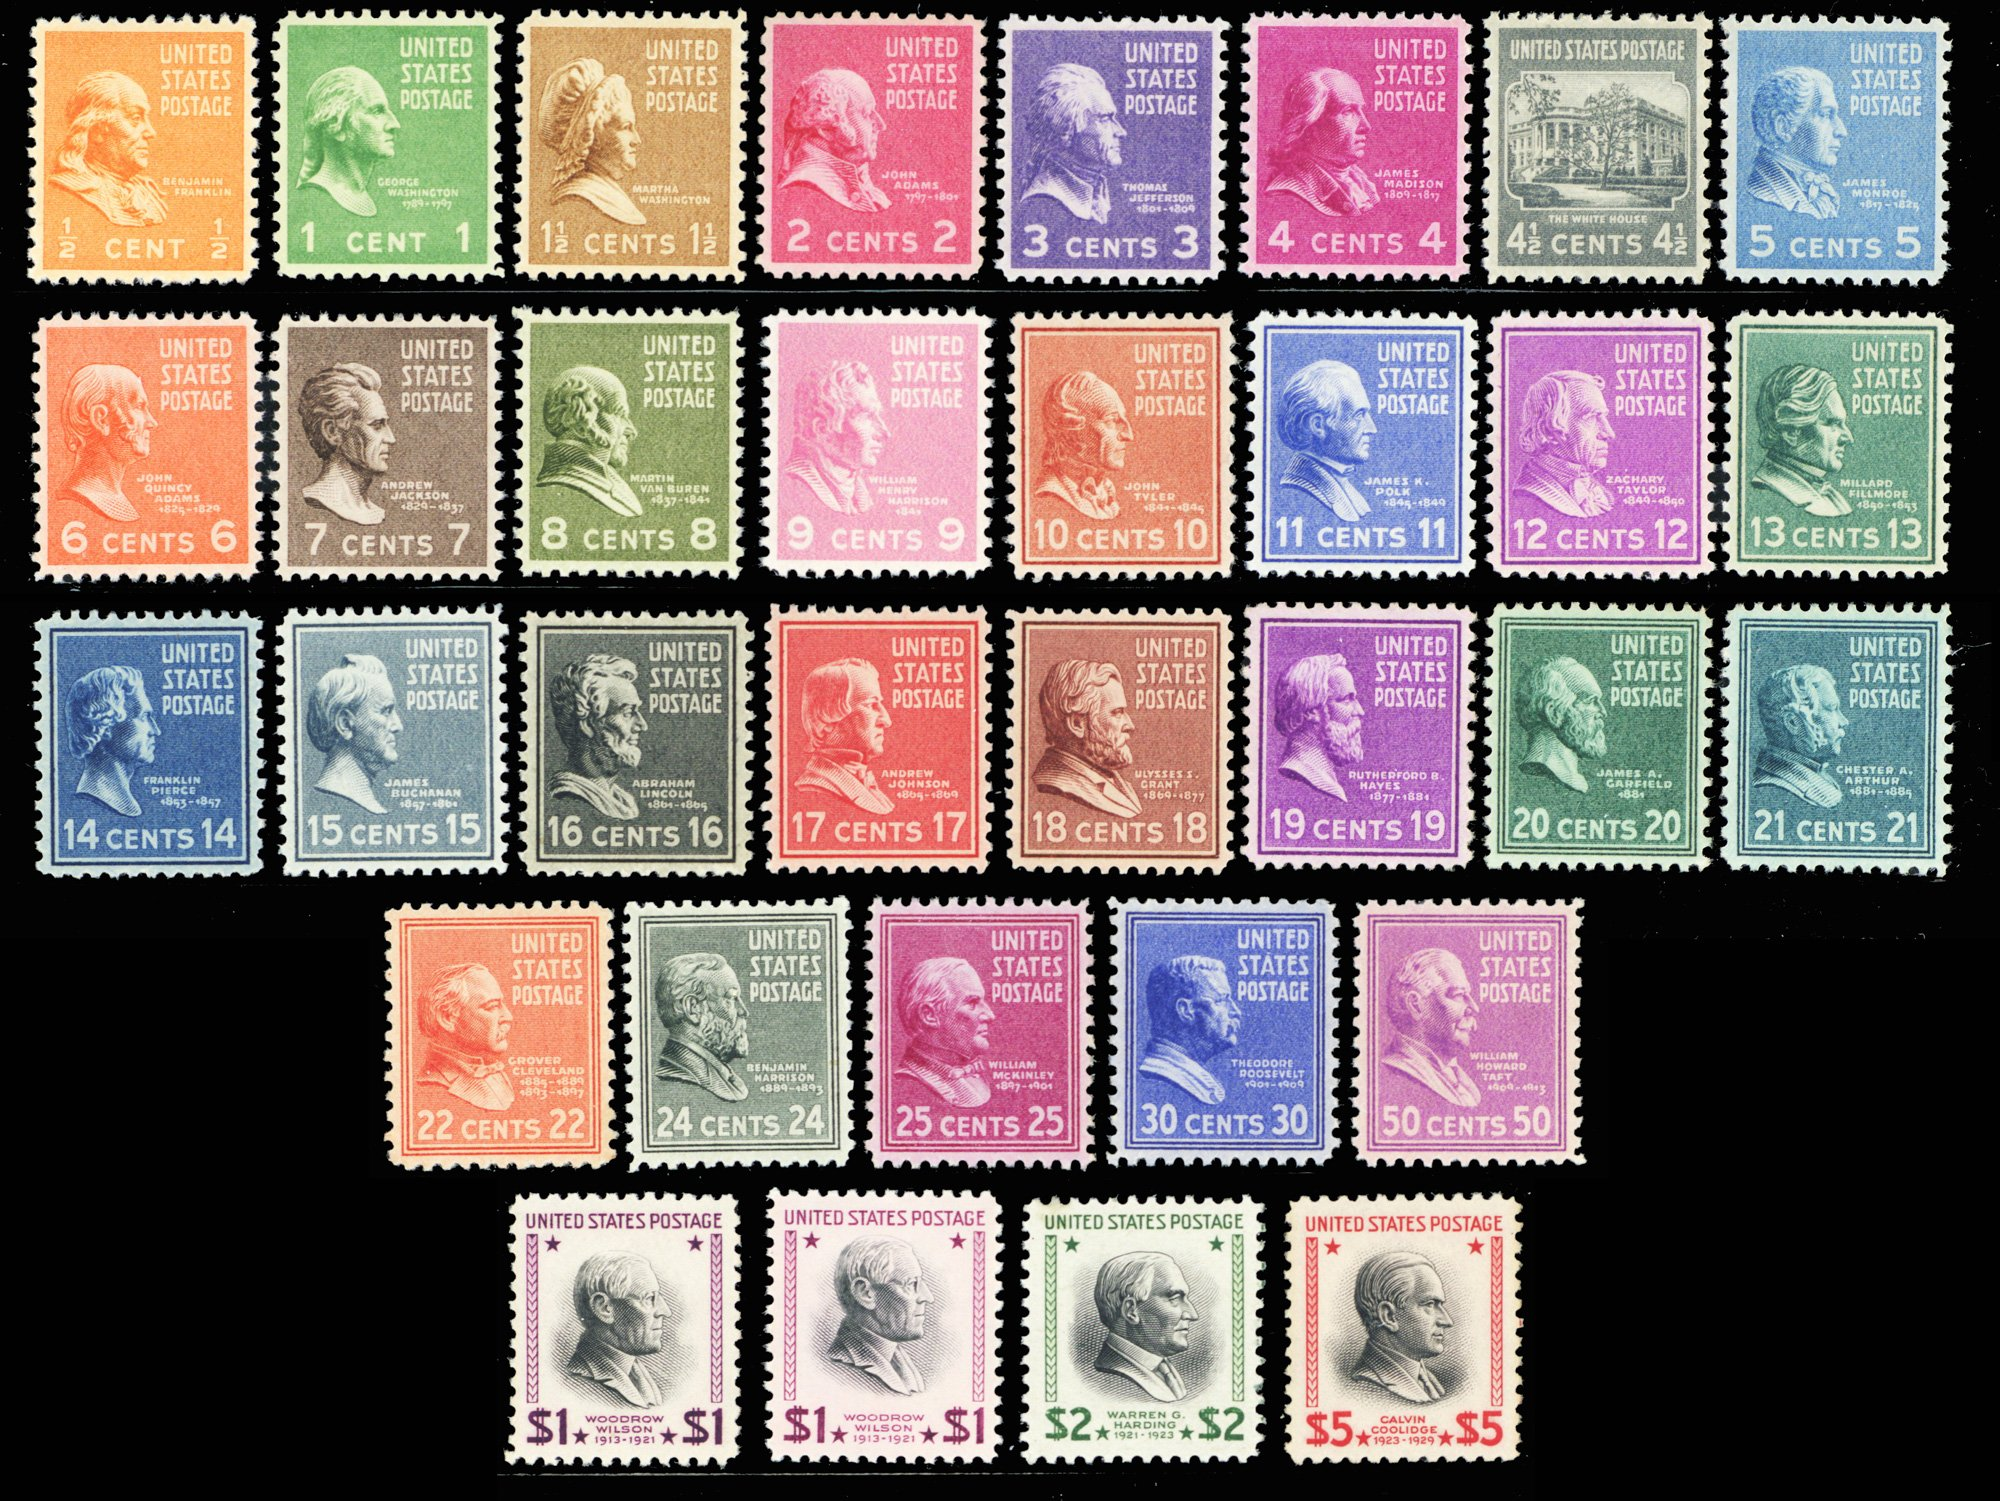 Presidential Issue of 1938 Complete Set of 33 Mint NH Stamps Scott 803-834 +832c By USPS